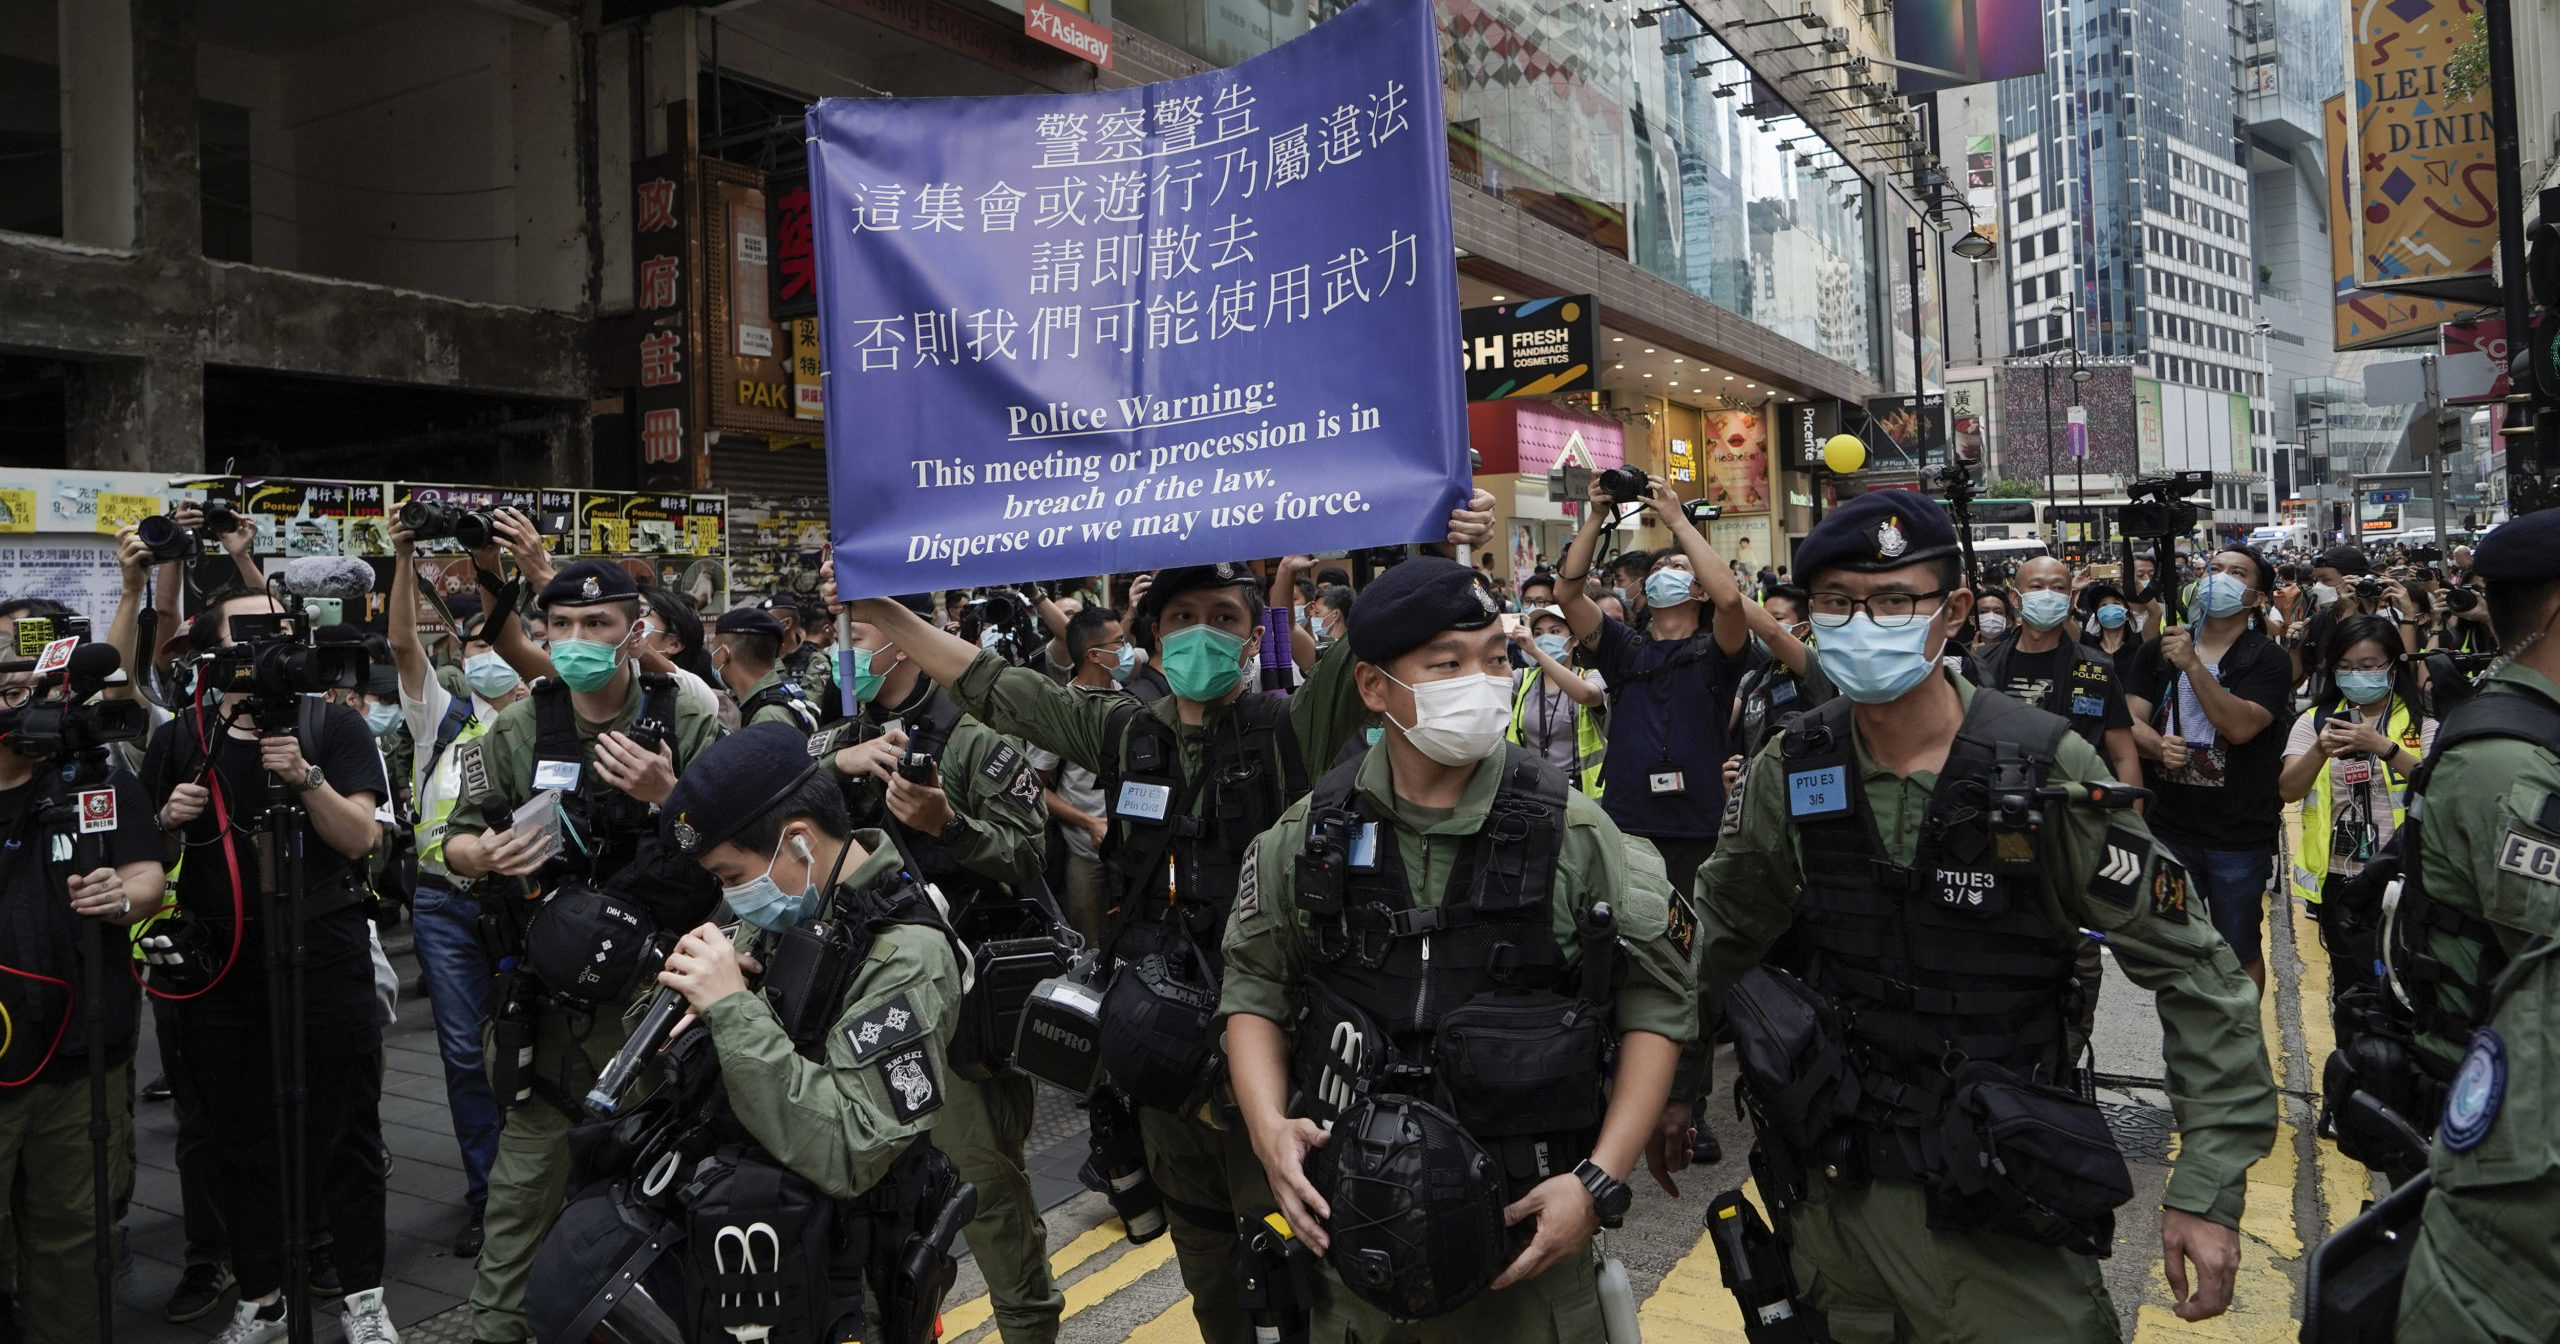 Police officers display a warning banner on China's National Day in Hong Kong on Oct. 1, 2020.